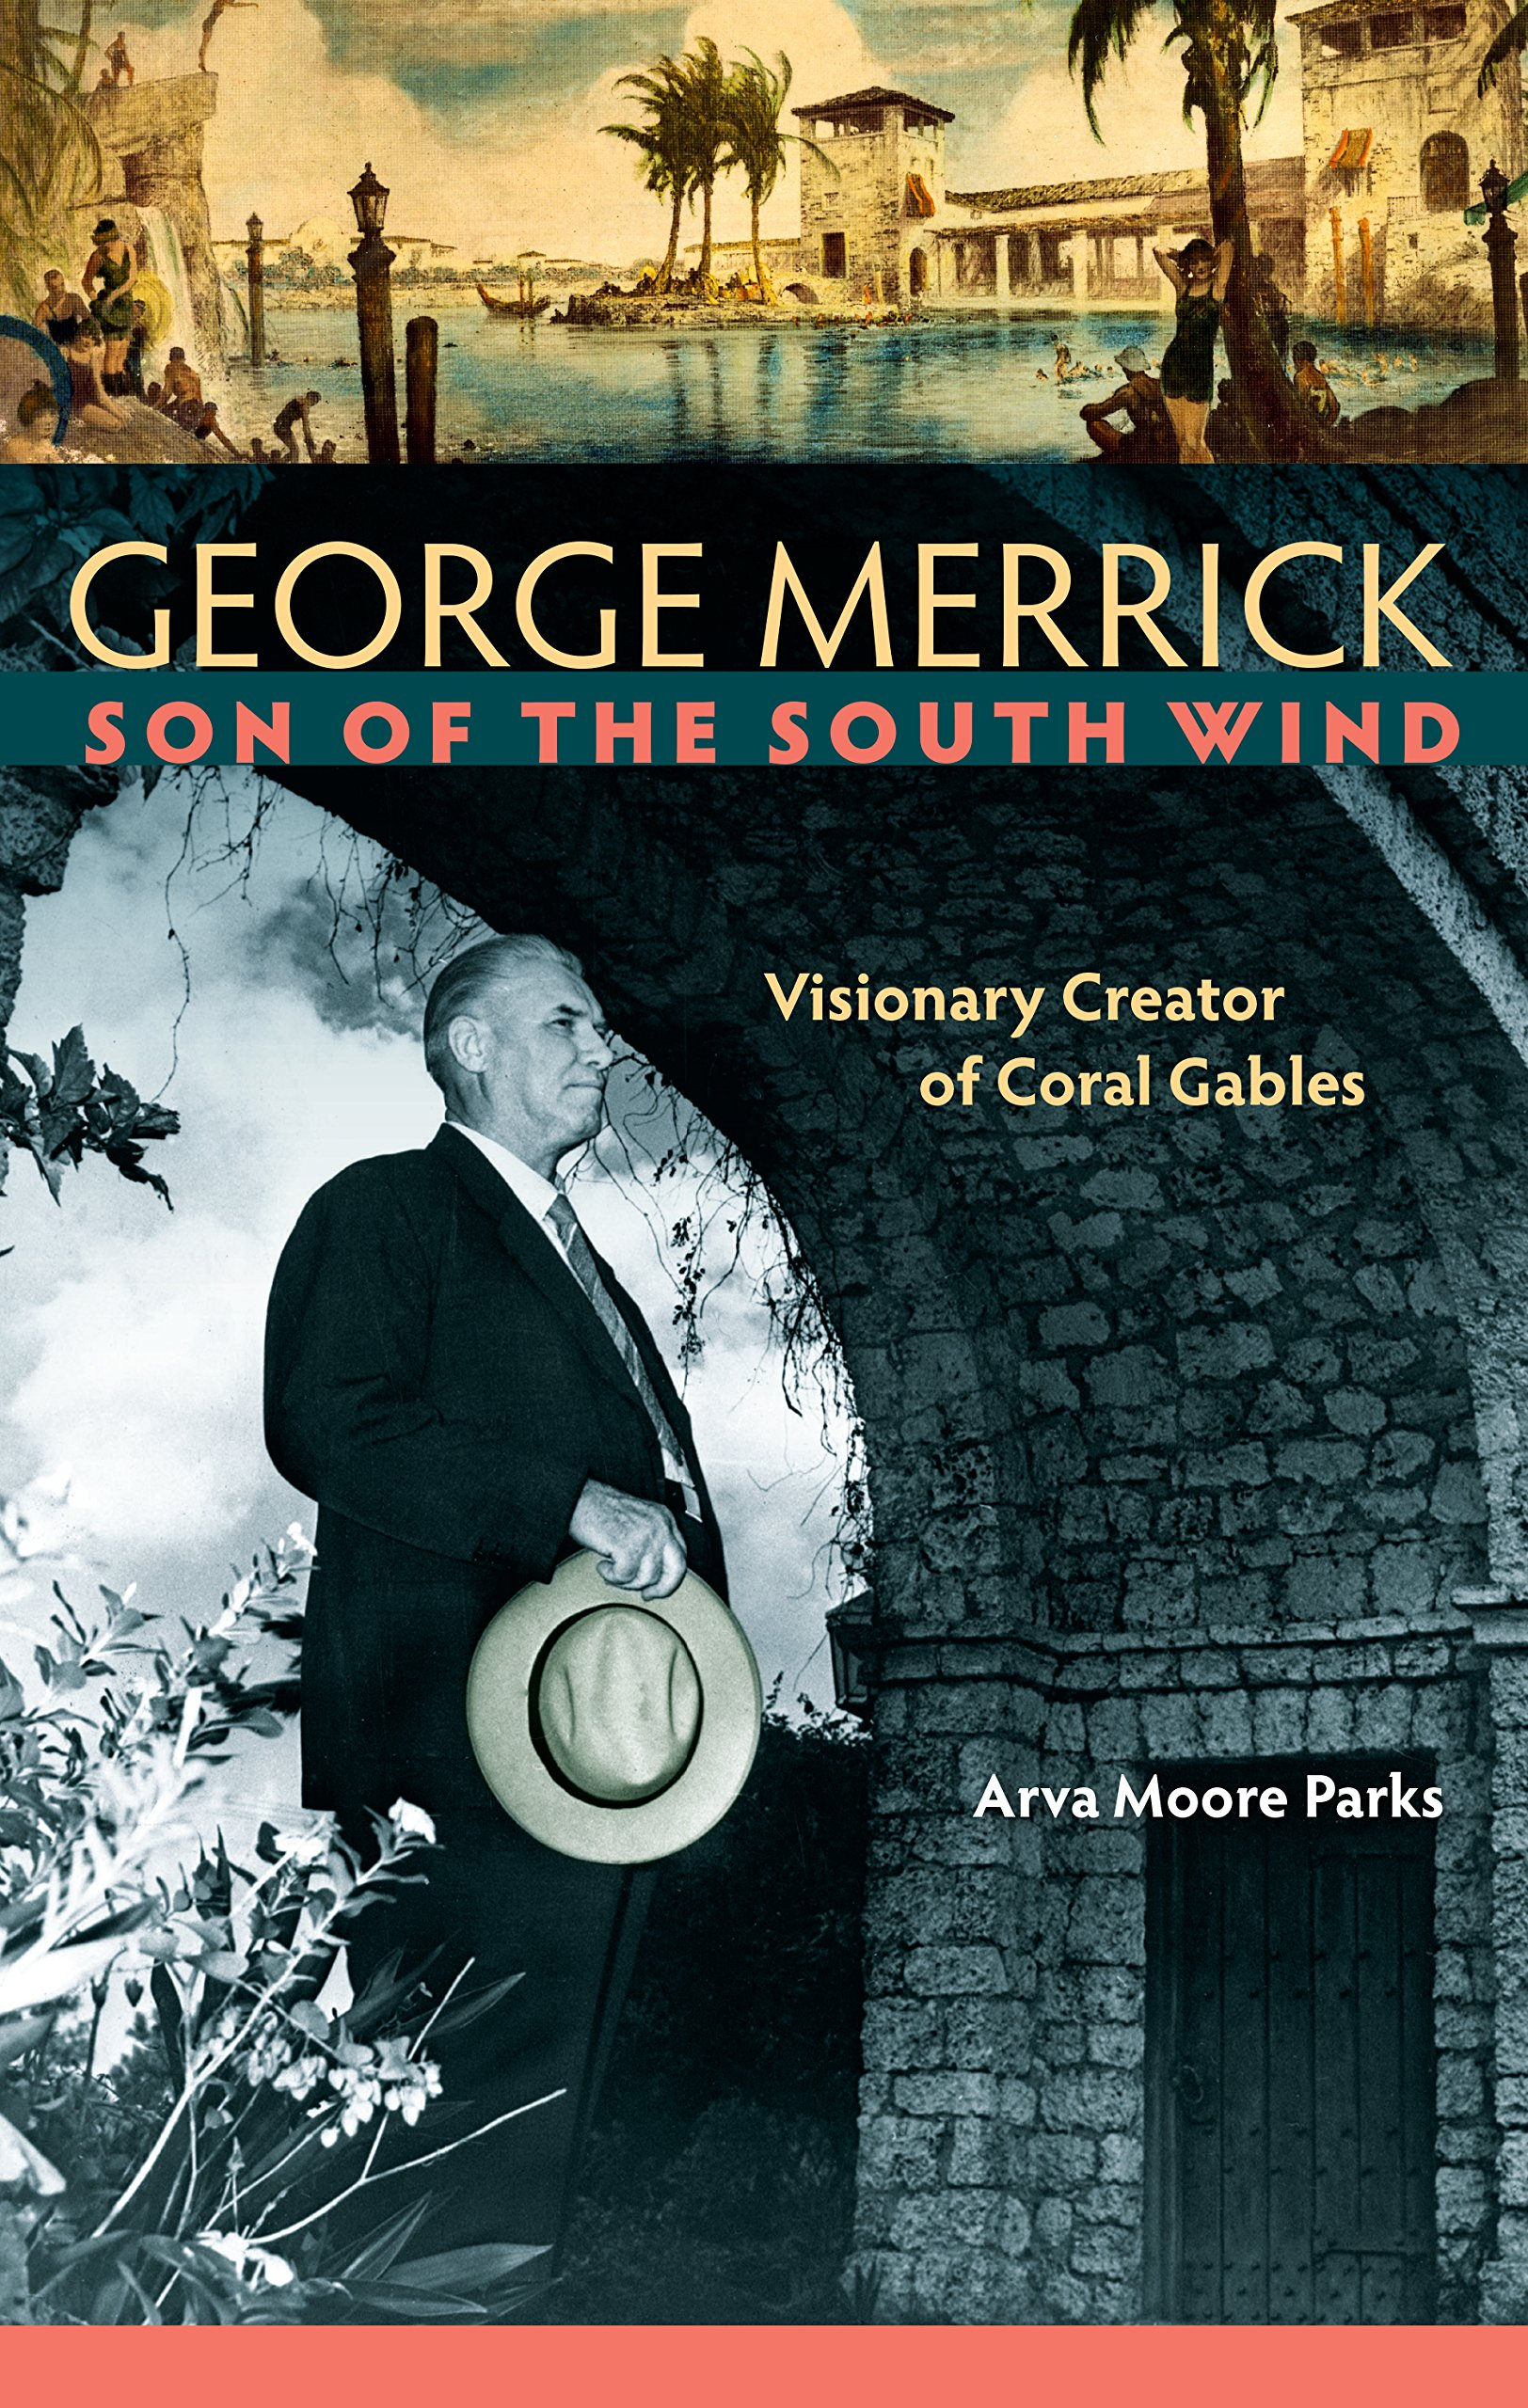 George Merrick, Son of the South Wind: Visionary Creator of Coral Gables book cover